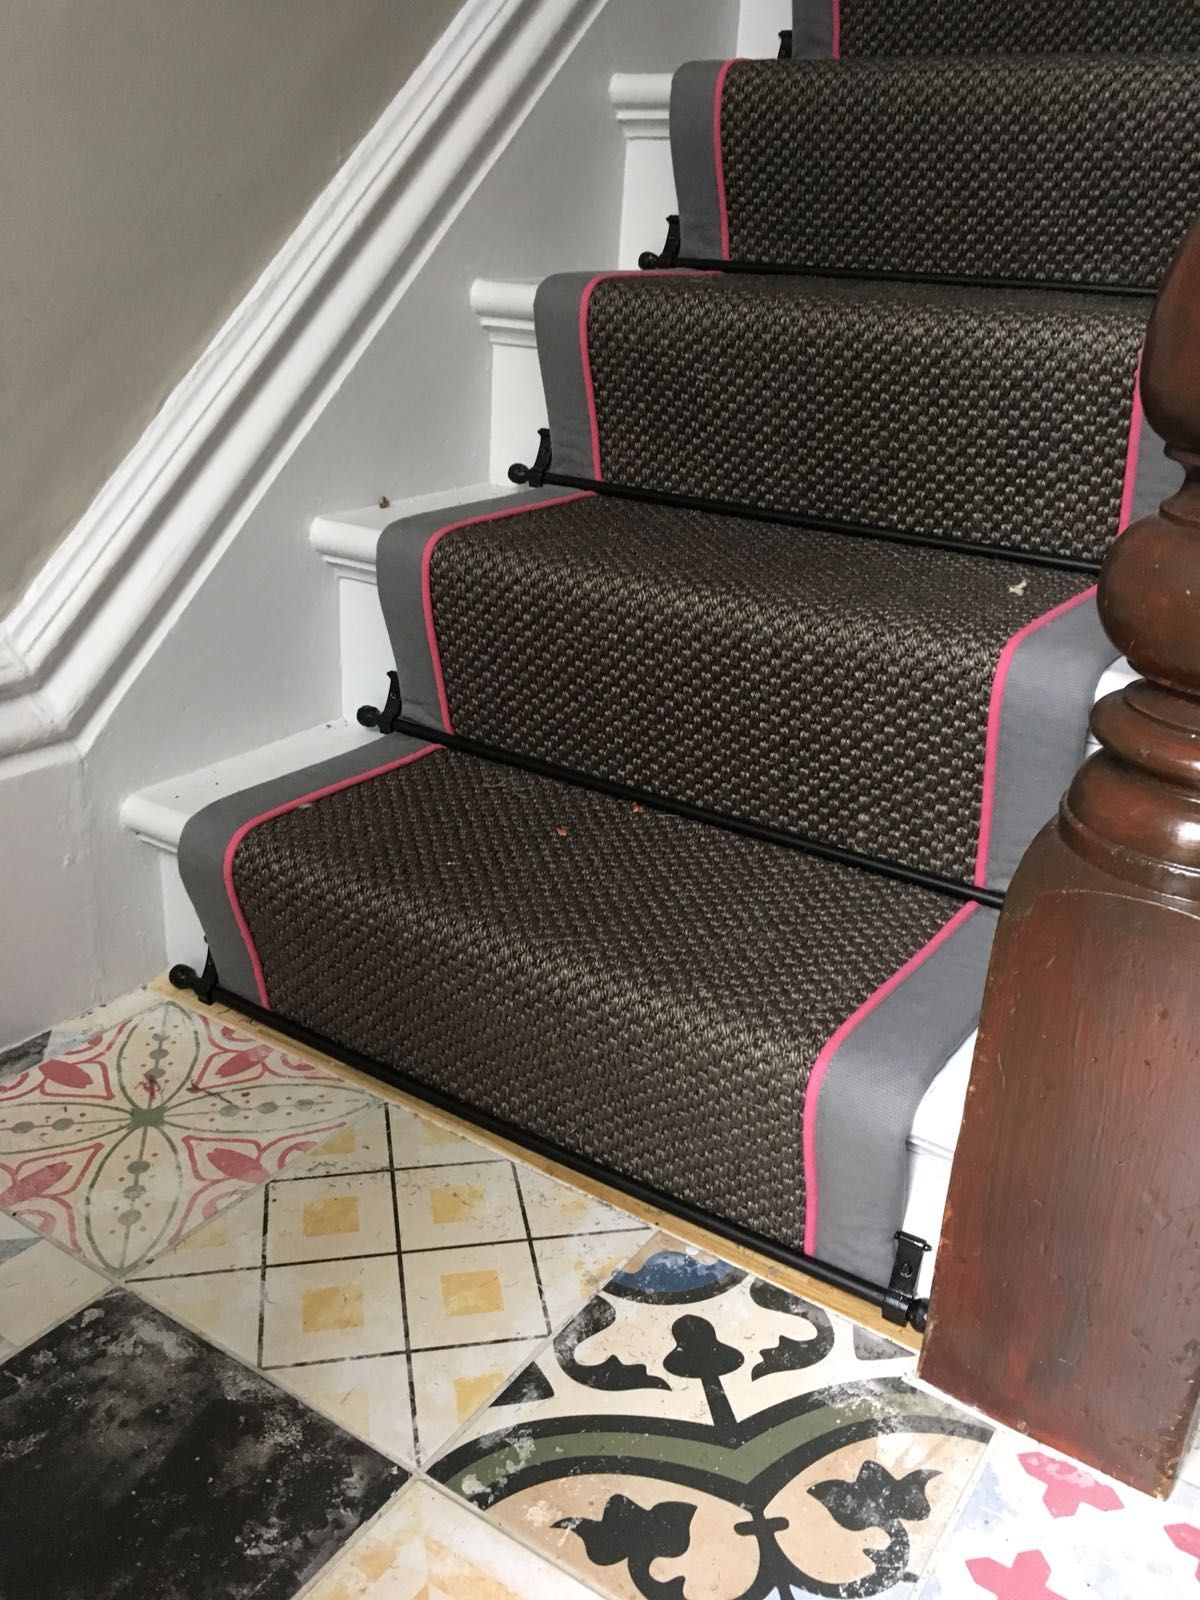 Carpet by Alternative Flooring, Stairrods by Stairrods UK